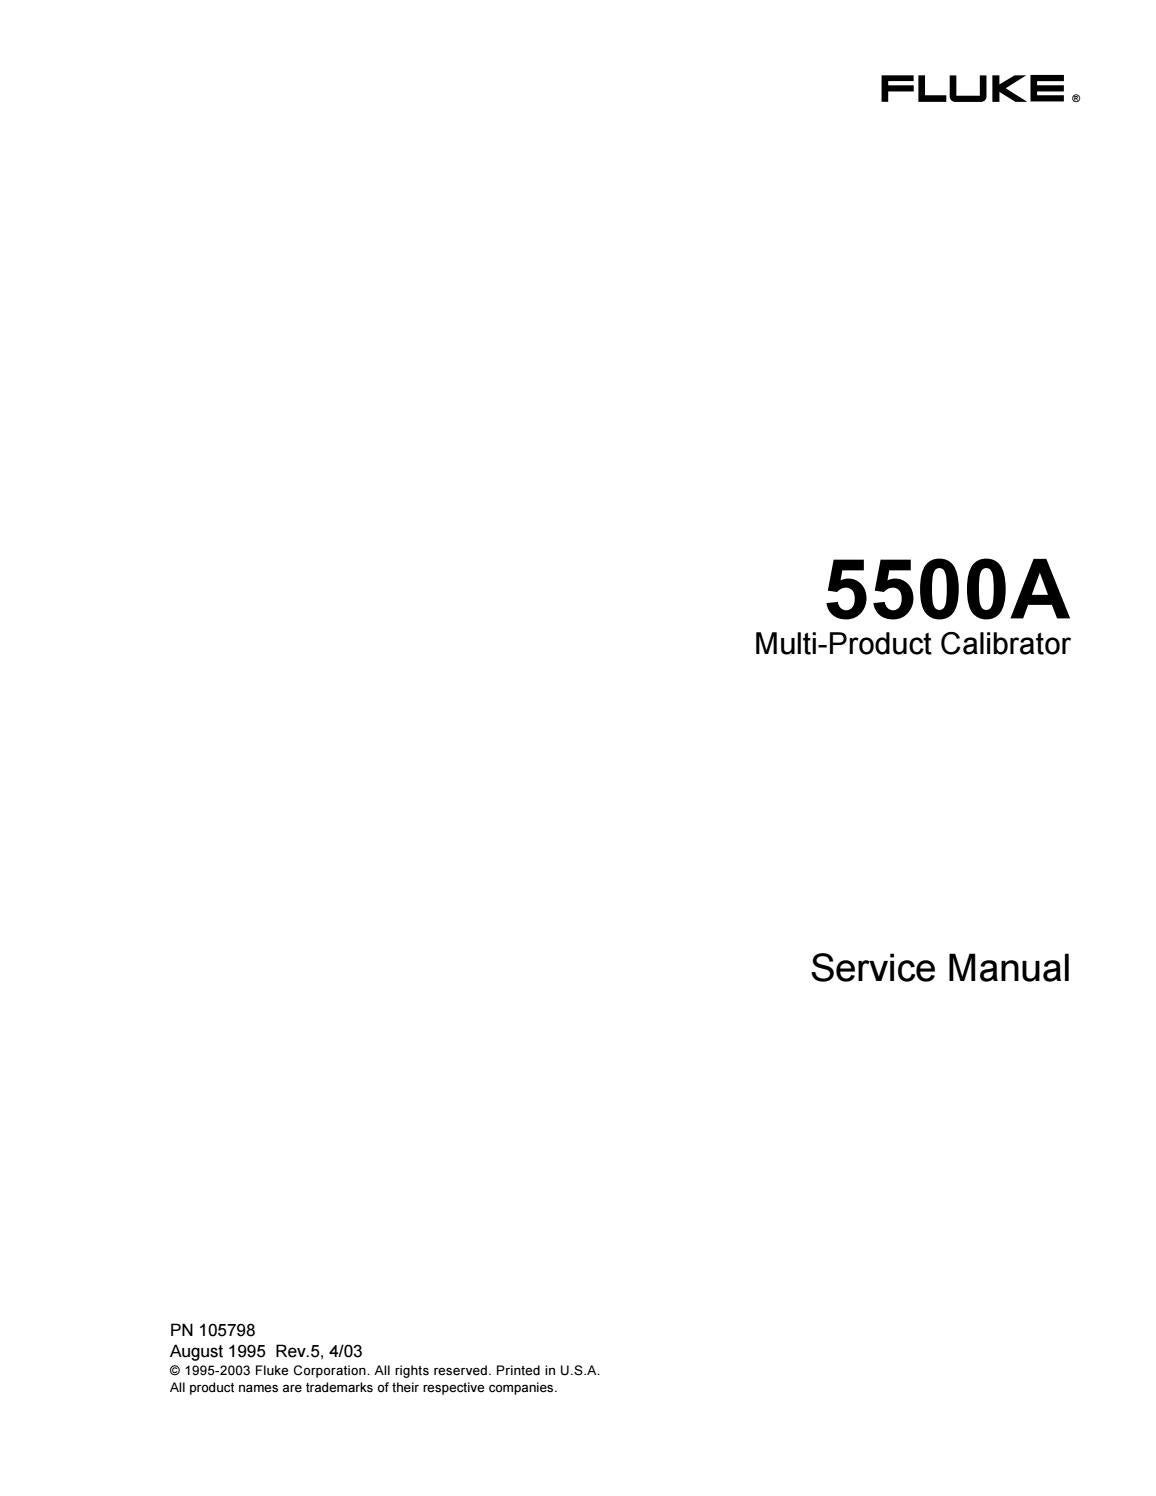 FLUKE 5500A SERVICE MANUAL WITH SCHEMATICS by Turhan - issuu on